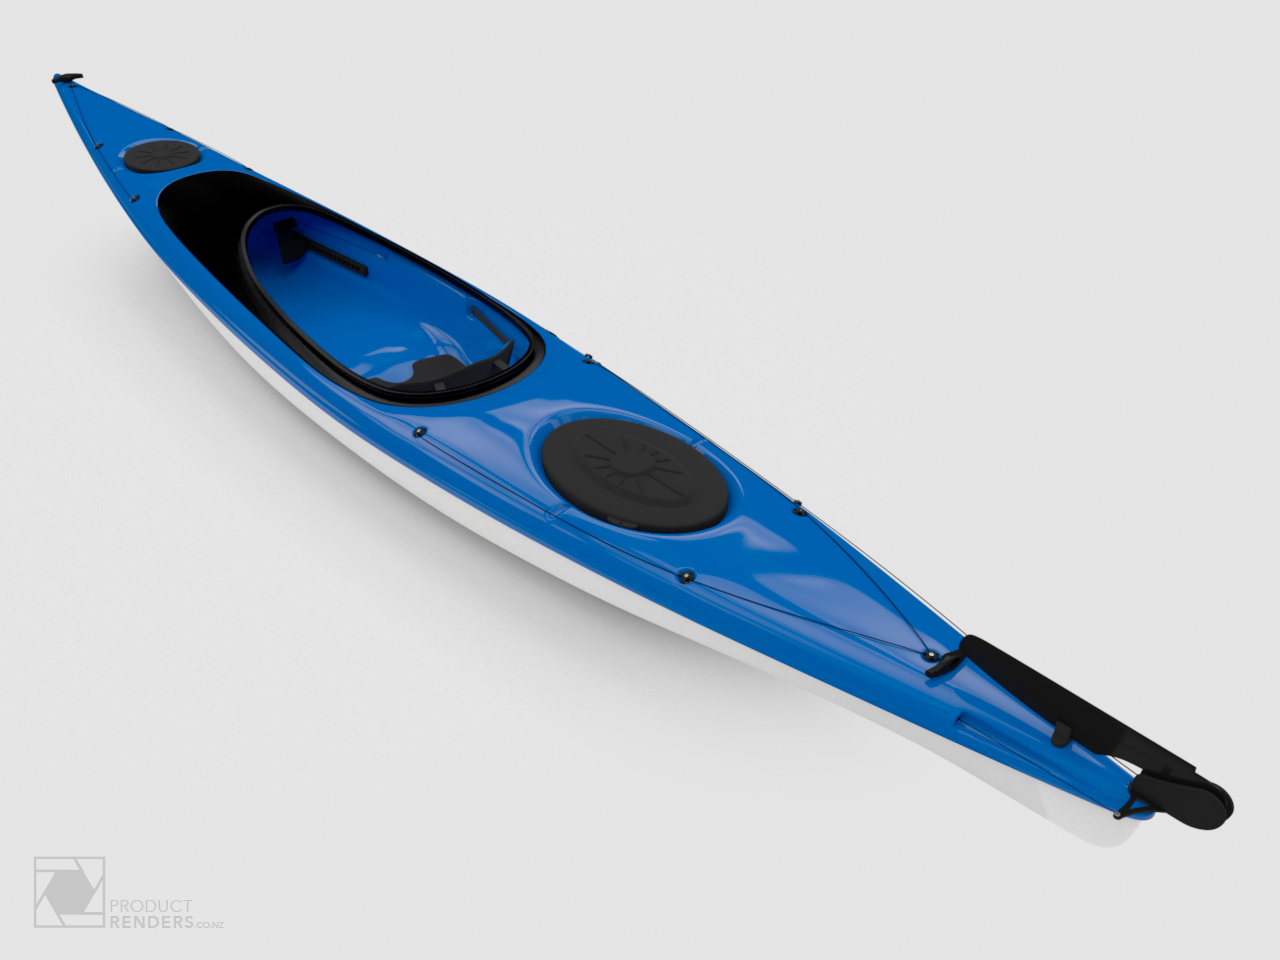 3D render of a blue Star Kayak